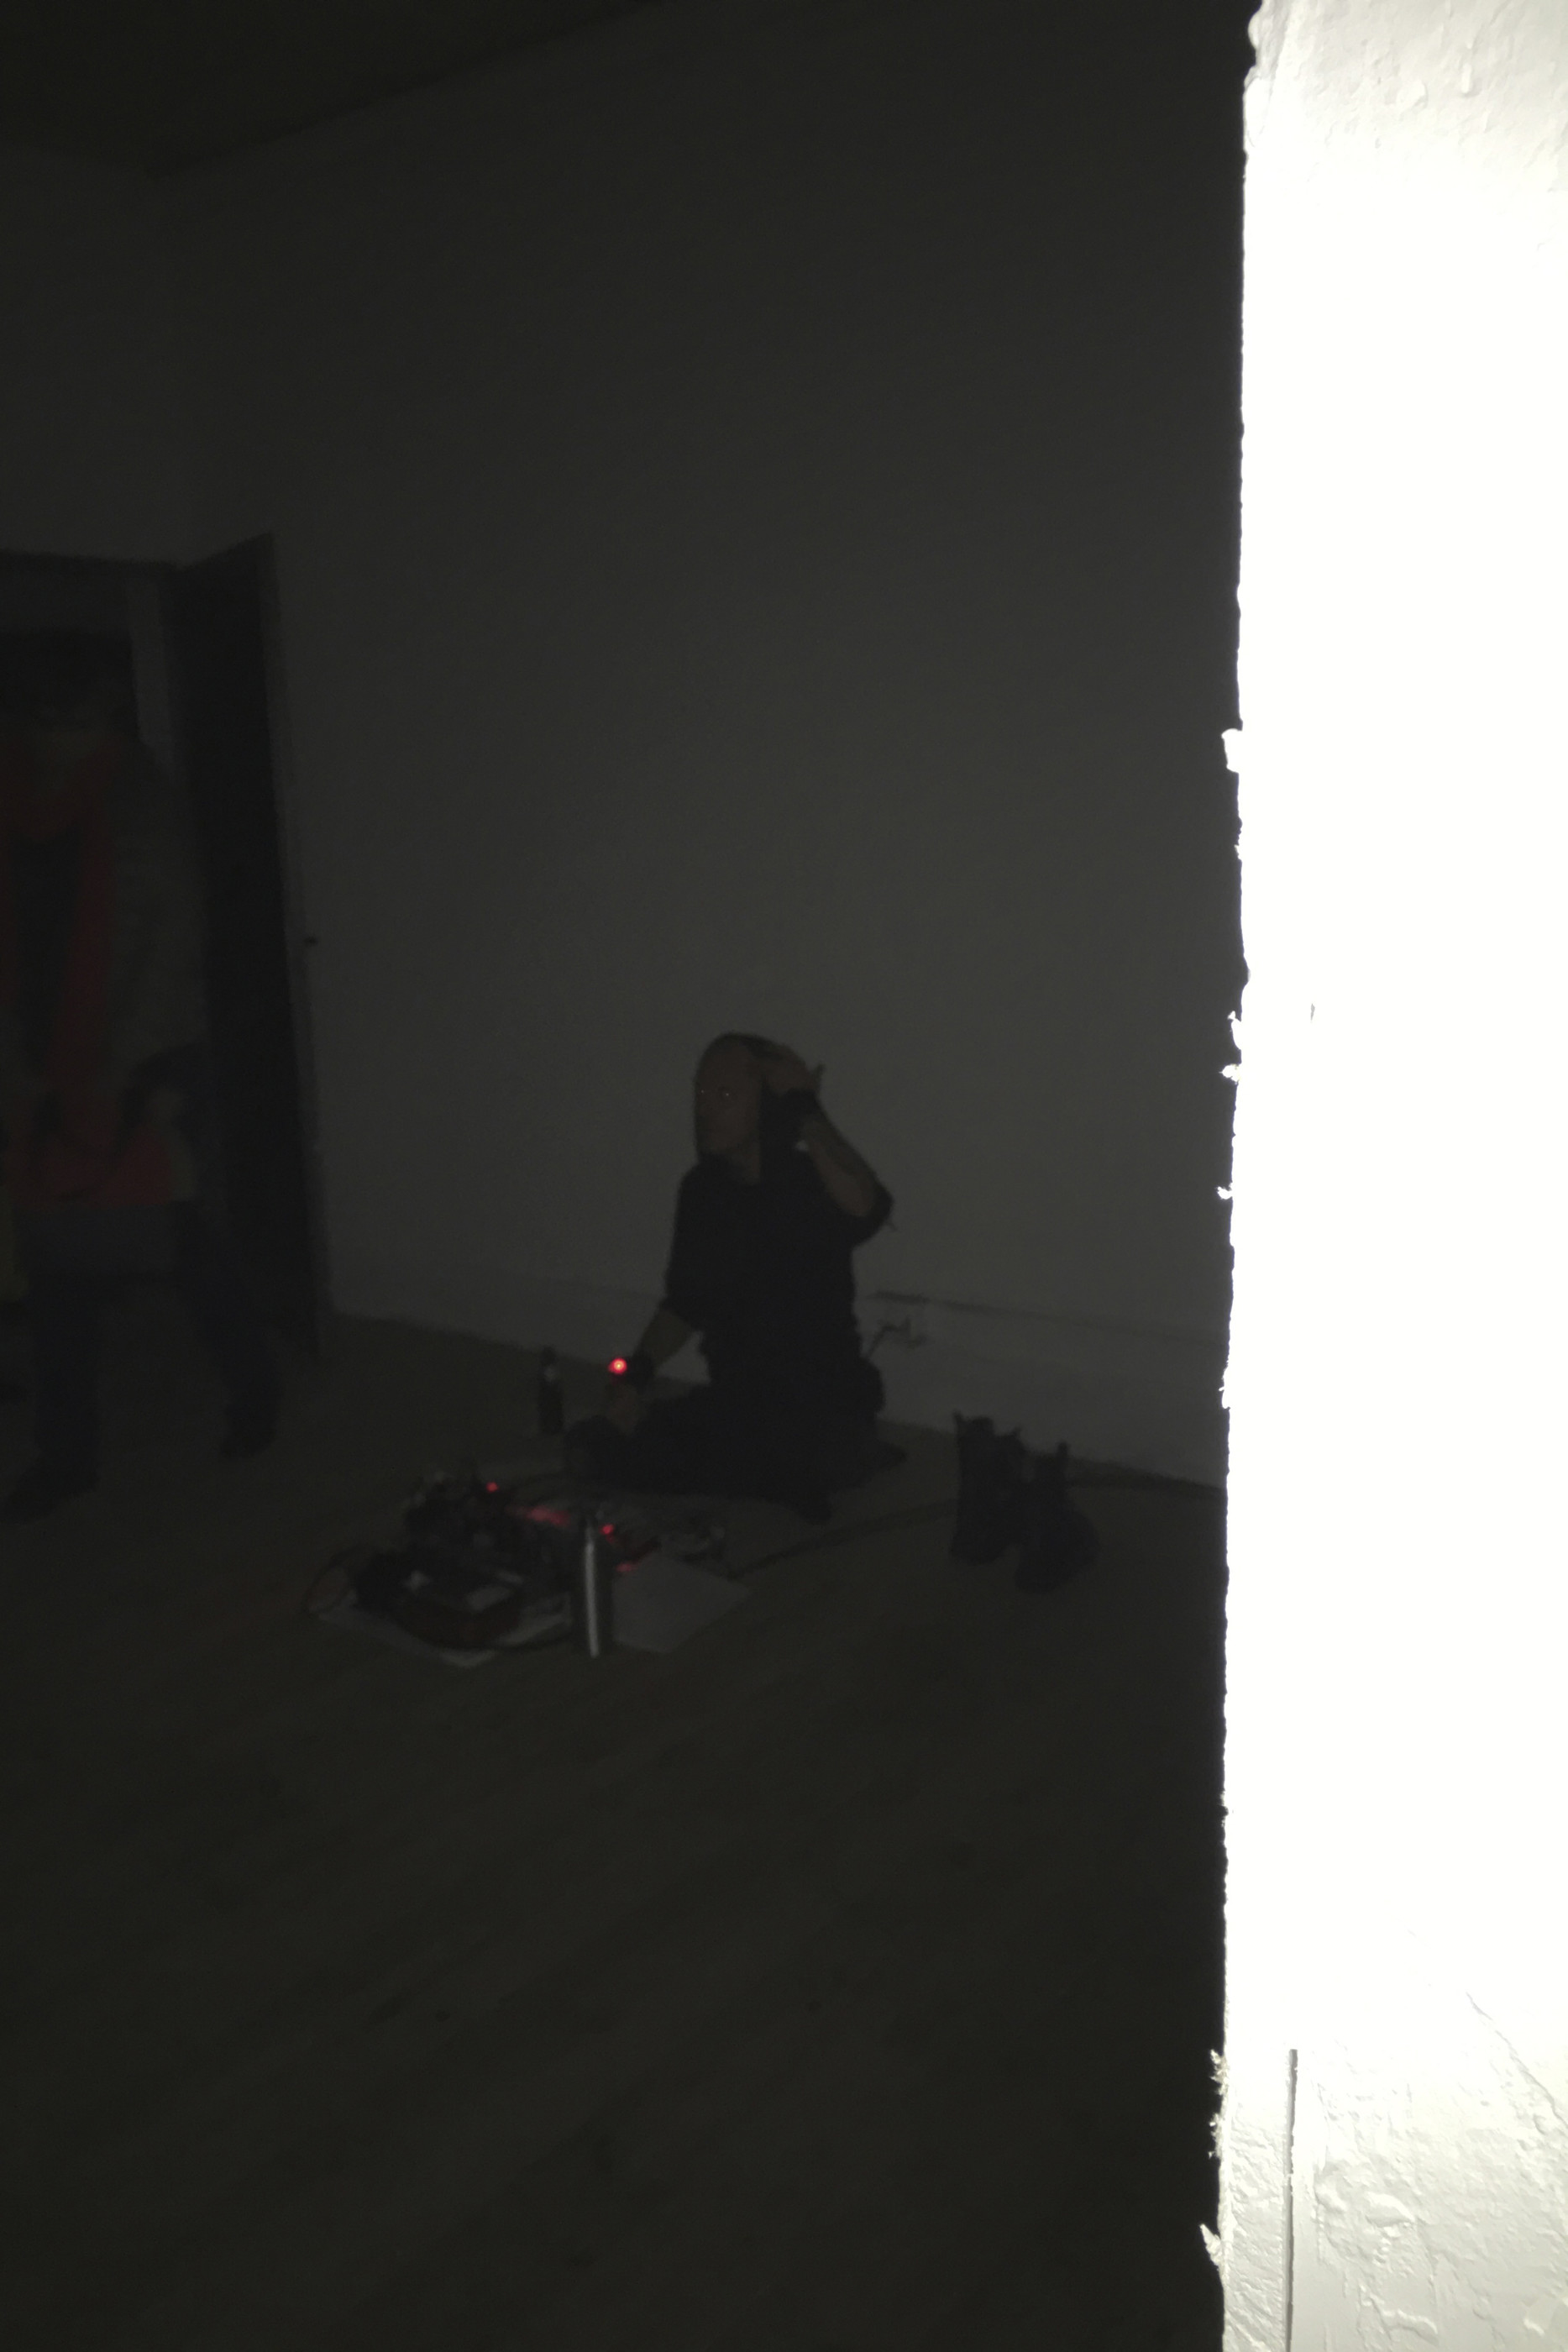 Dave Phillips, Field Recordings, 2001/18, LIve Set - 25.10.19